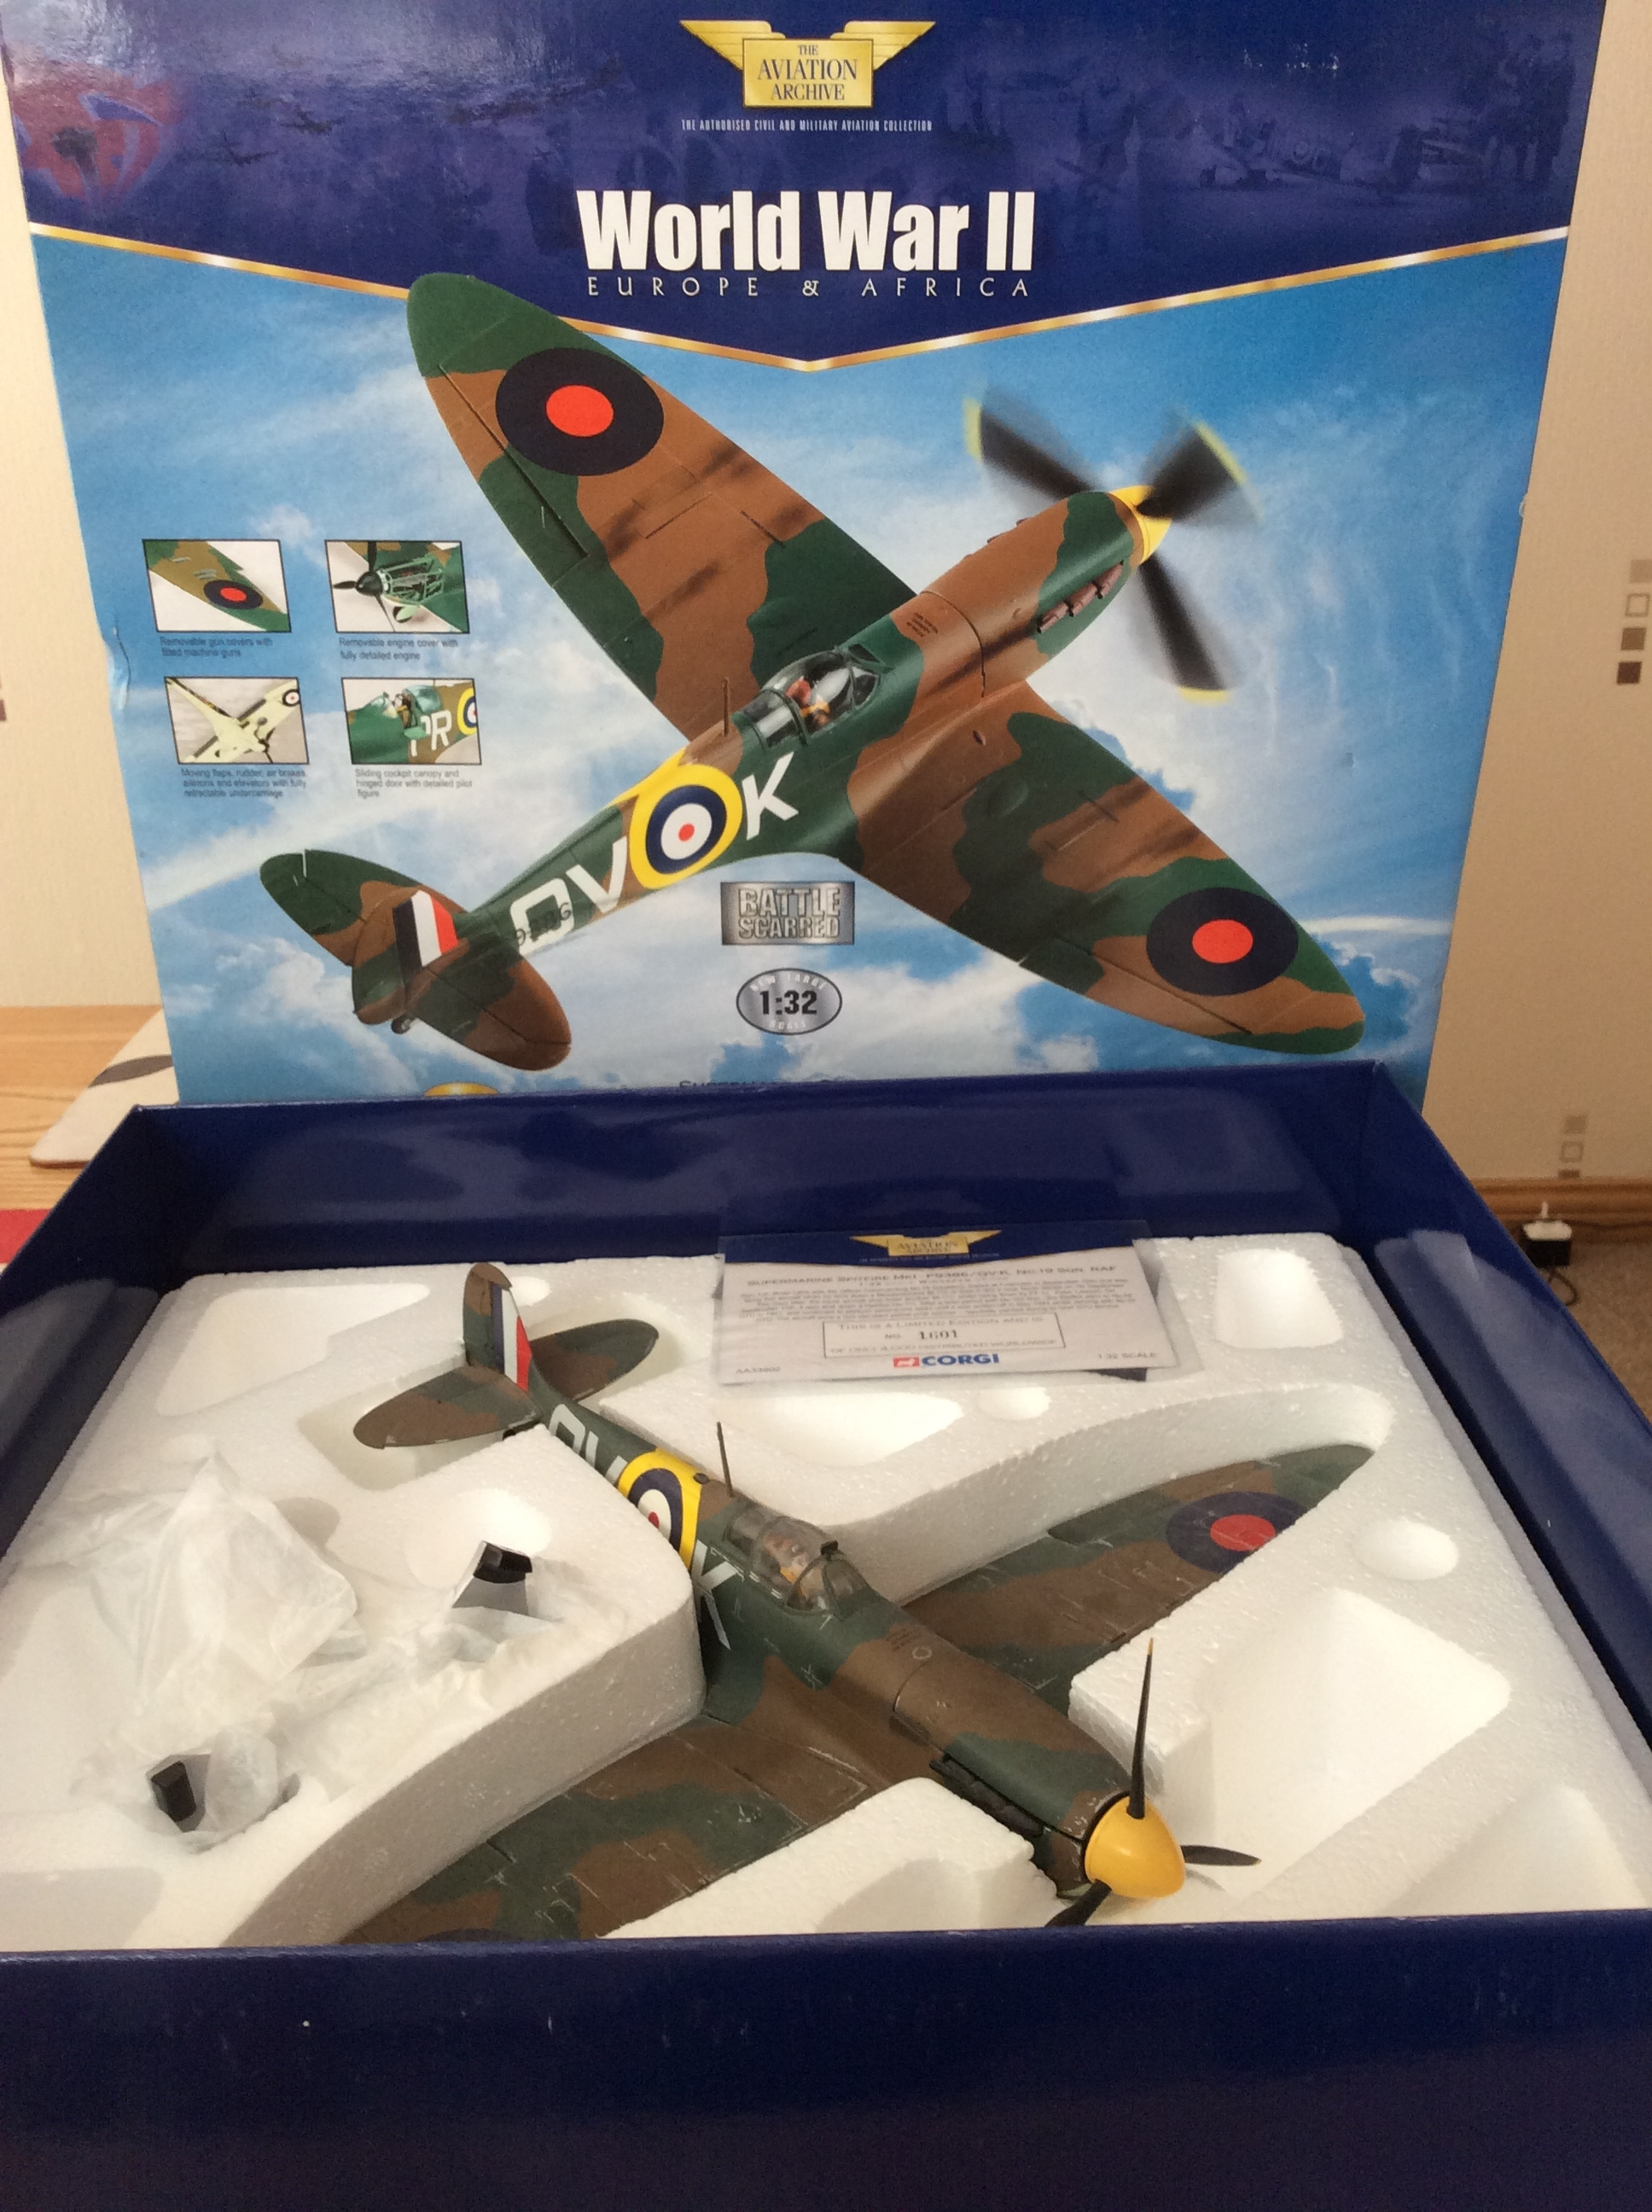 Corgi Aviation Archive Collector Series AA33902 Supermarine Spitfire Mk I  Diecast Model RAF No 19 Sqn, Brian Lane, RAF Fowlmere, England, Battle of